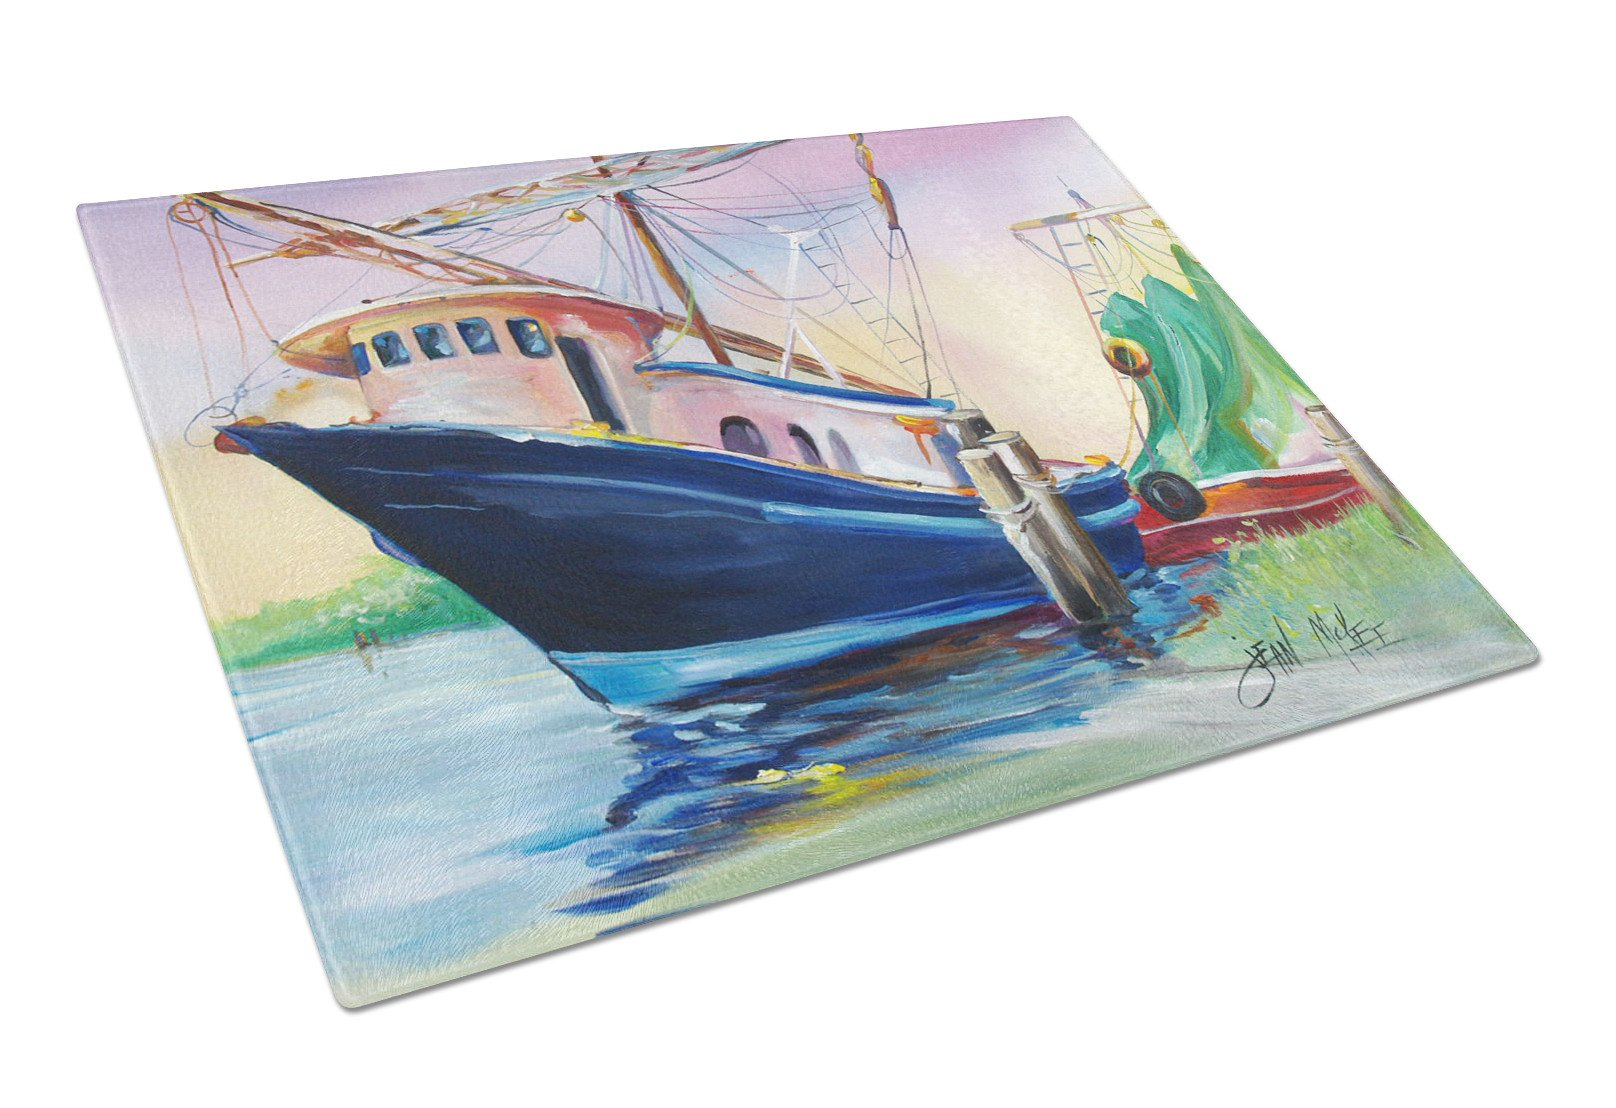 Shrimper Southern Star Glass Cutting Board Large JMK1078LCB by Caroline's Treasures